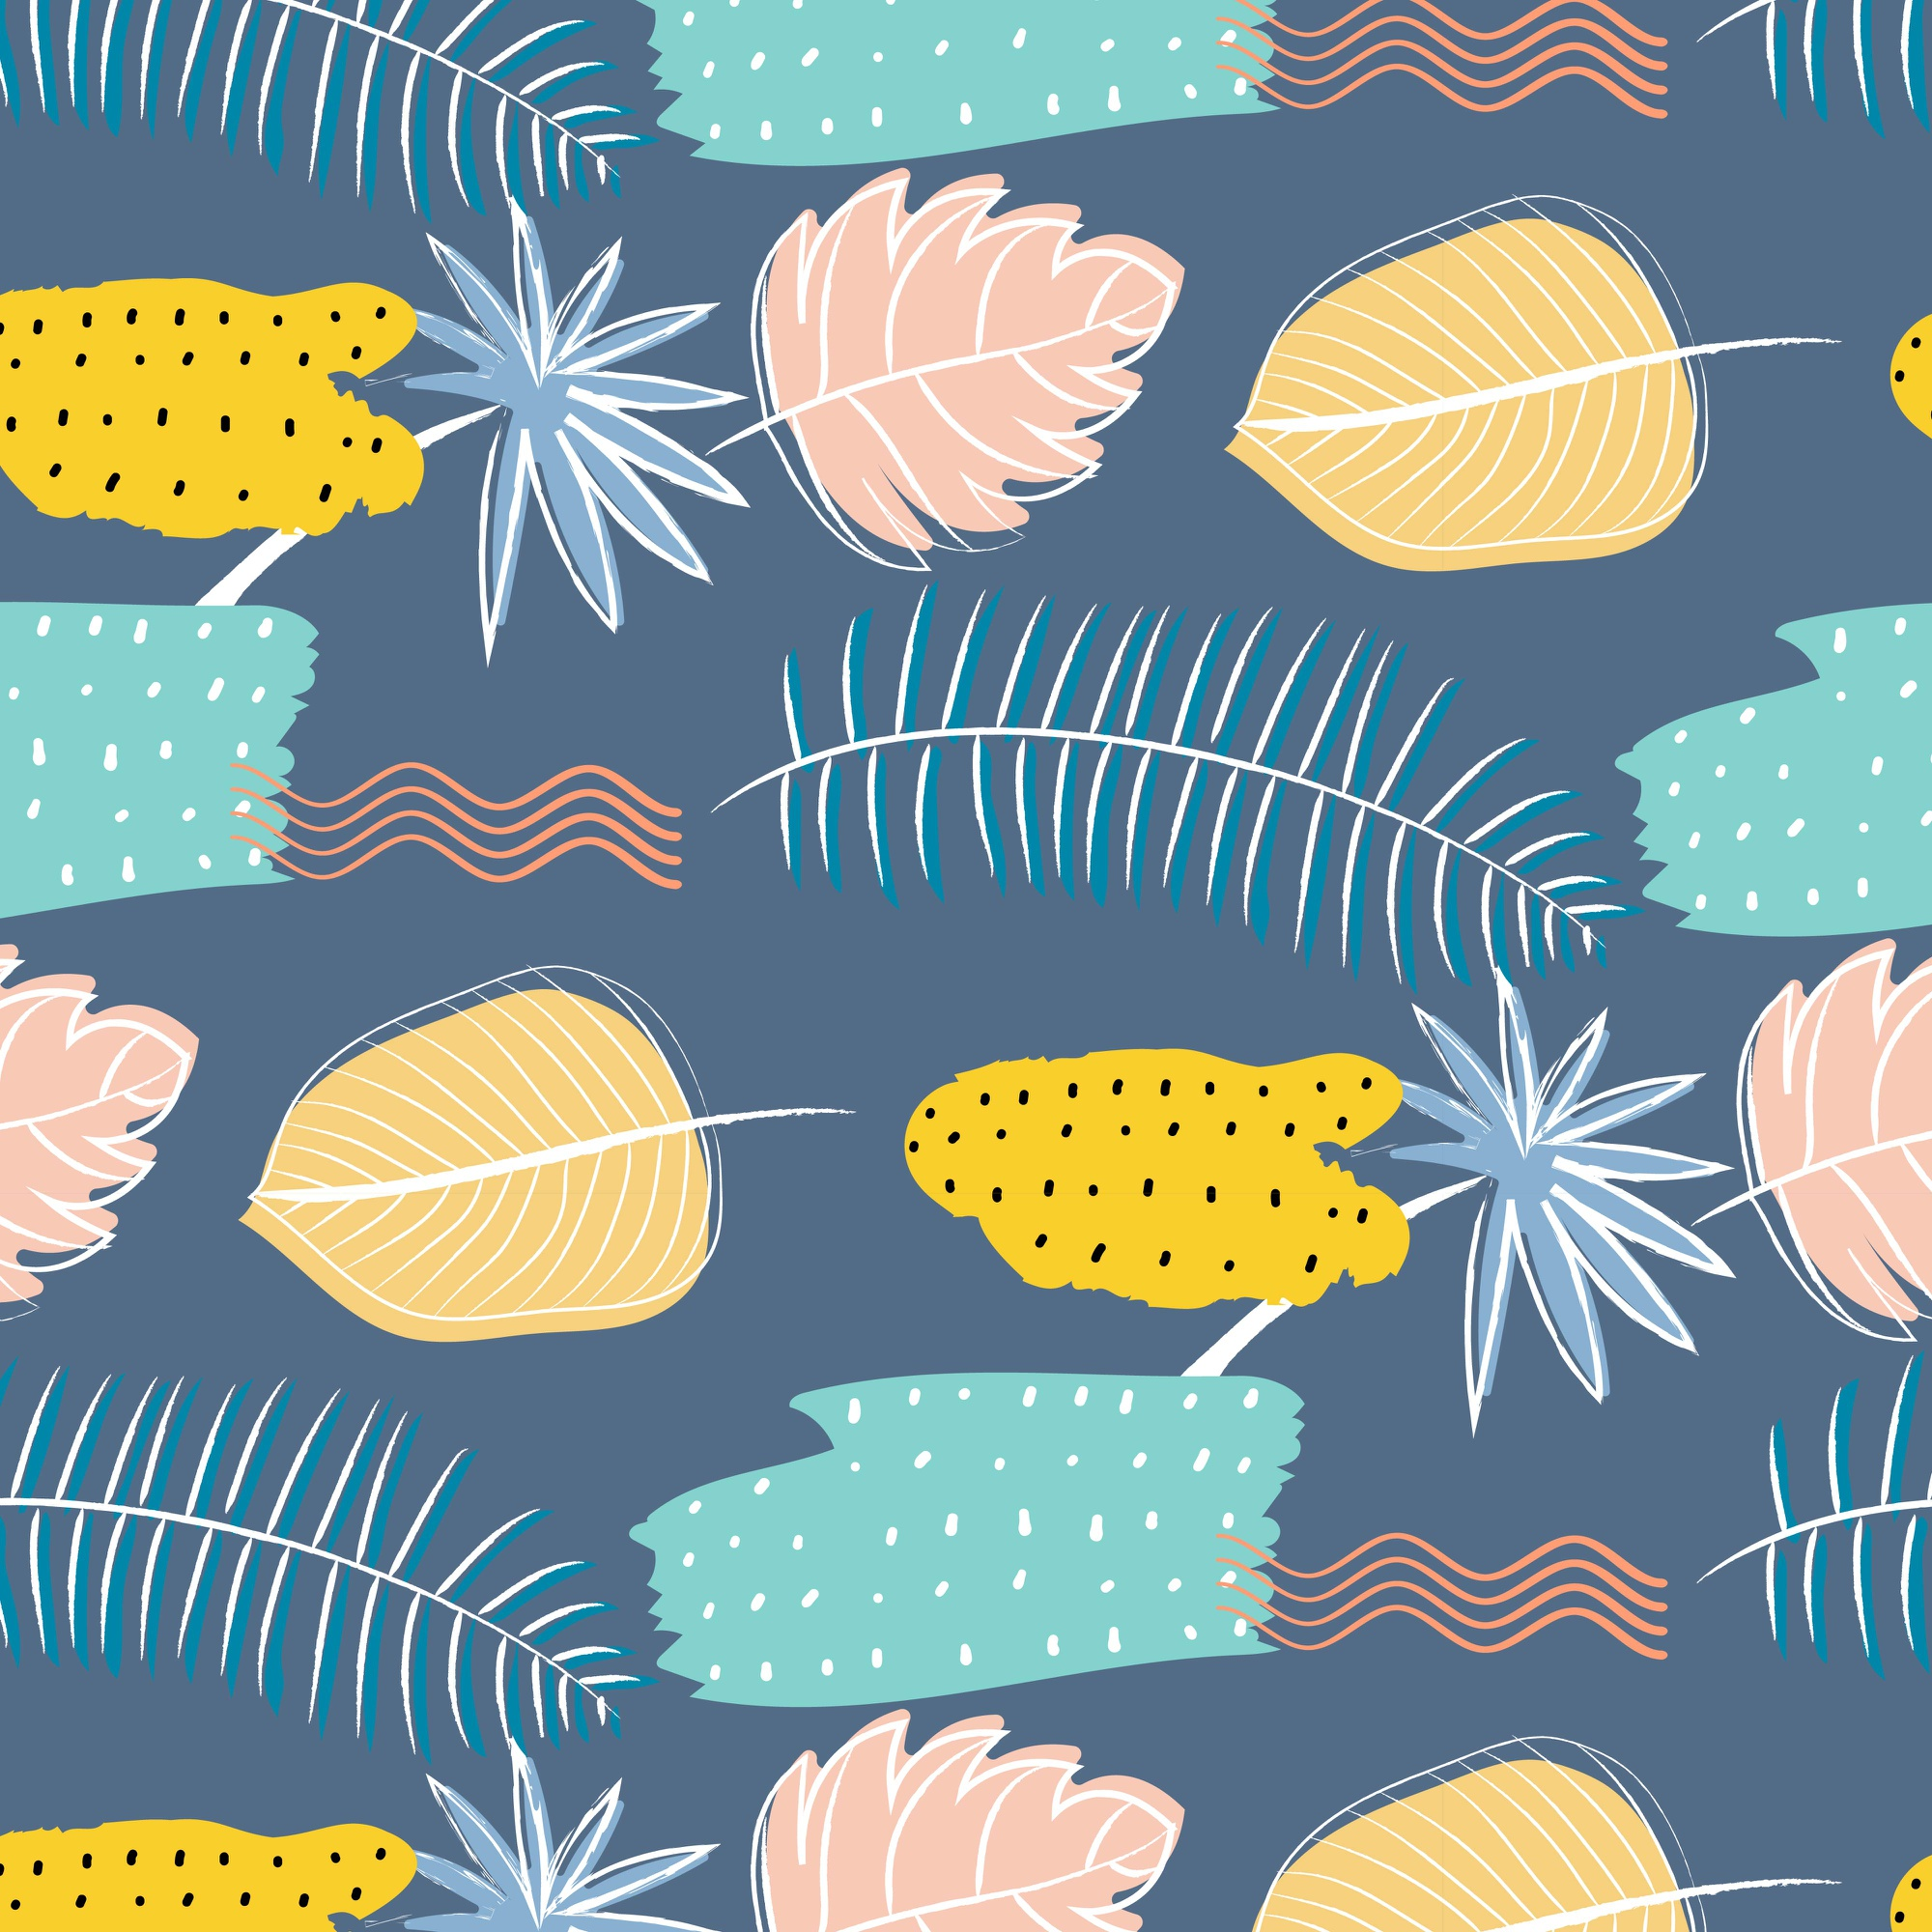 Hand Drawn Textures Abstract Floral Pattern Background.